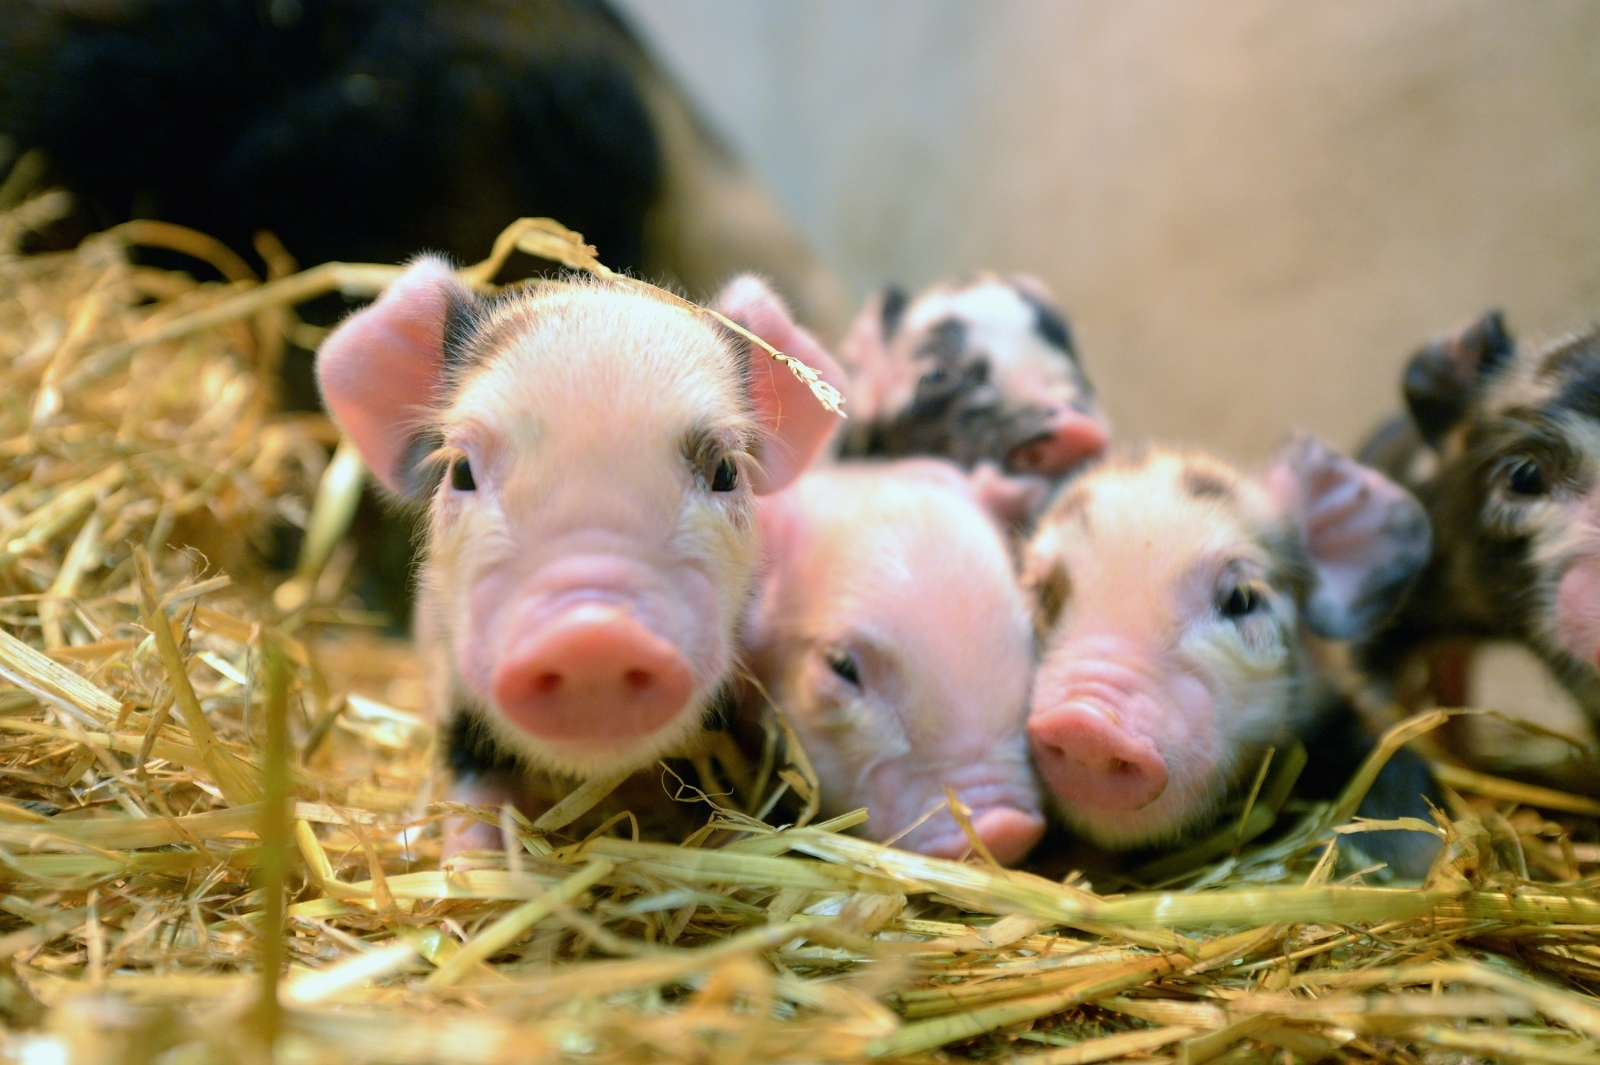 Piglets that were saved from fire served for dinner at fire station